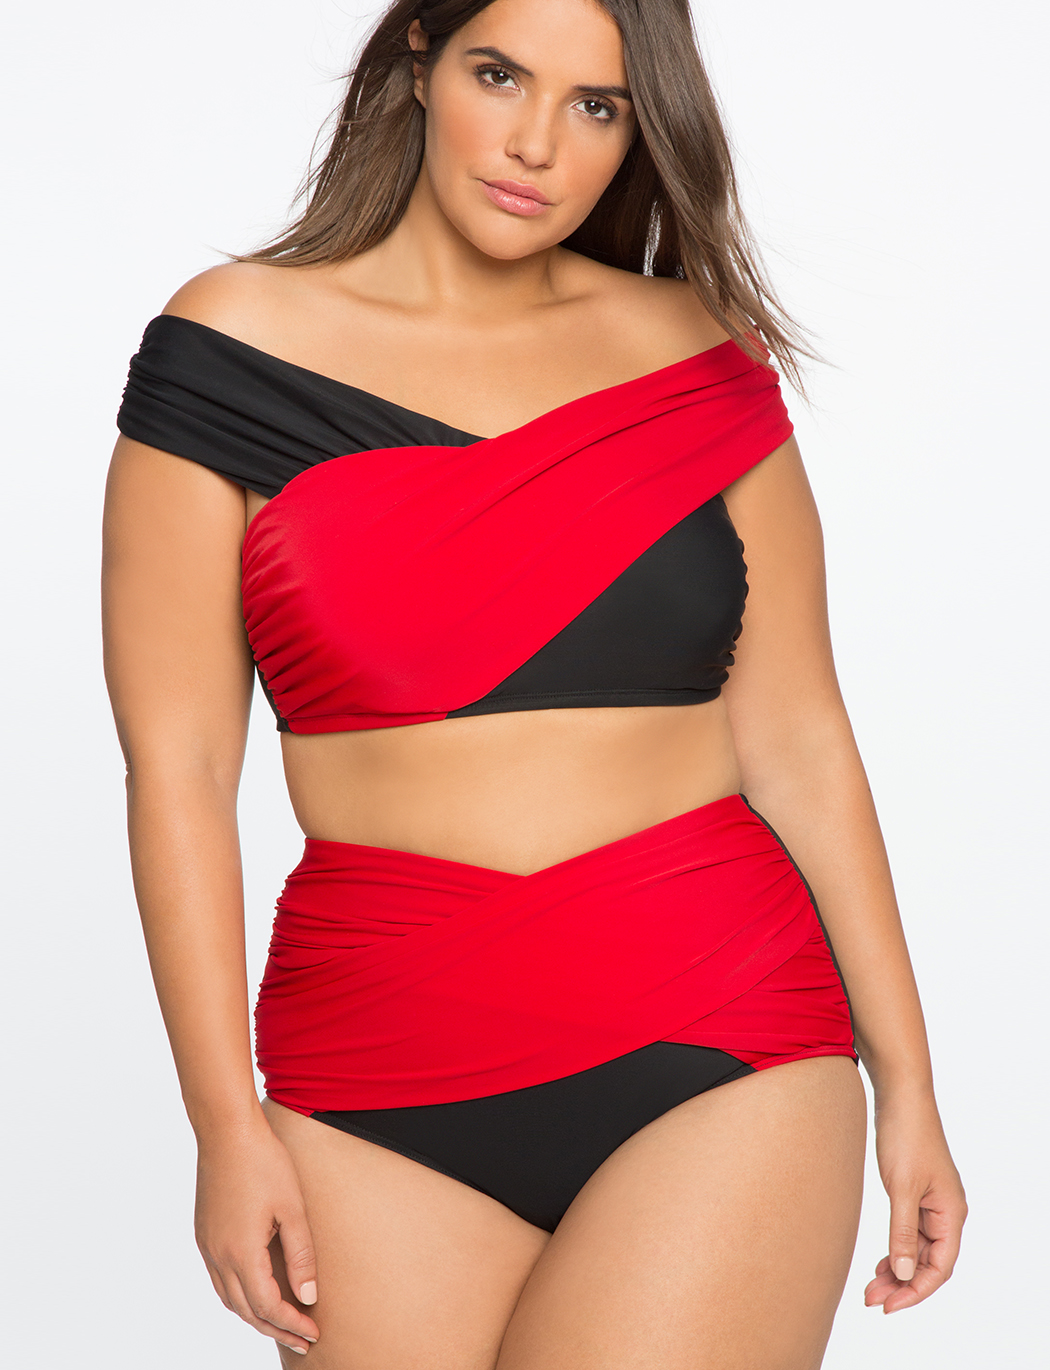 ac99fd6e5bdbec Plus Size Cross Front Bikini Top in Black and Red by Eloquii. Off The  Shoulder ...